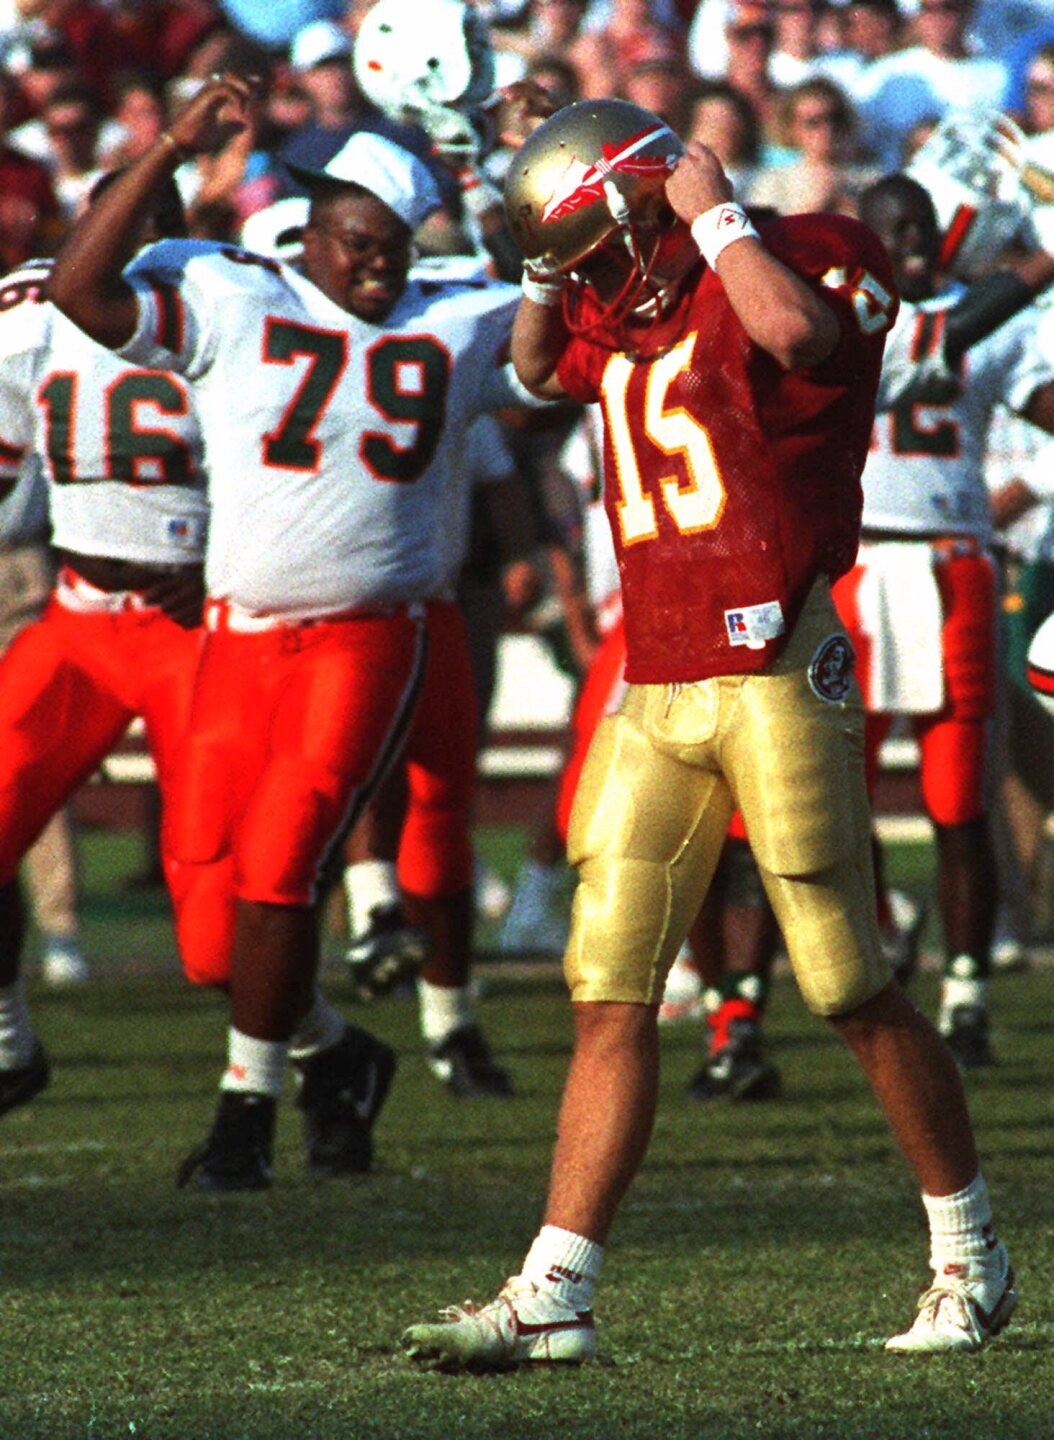 Florida State Seminoles kicker Gerry Thomas walks off field after 'Wide Right I' against Miami Hurricanes in 1991